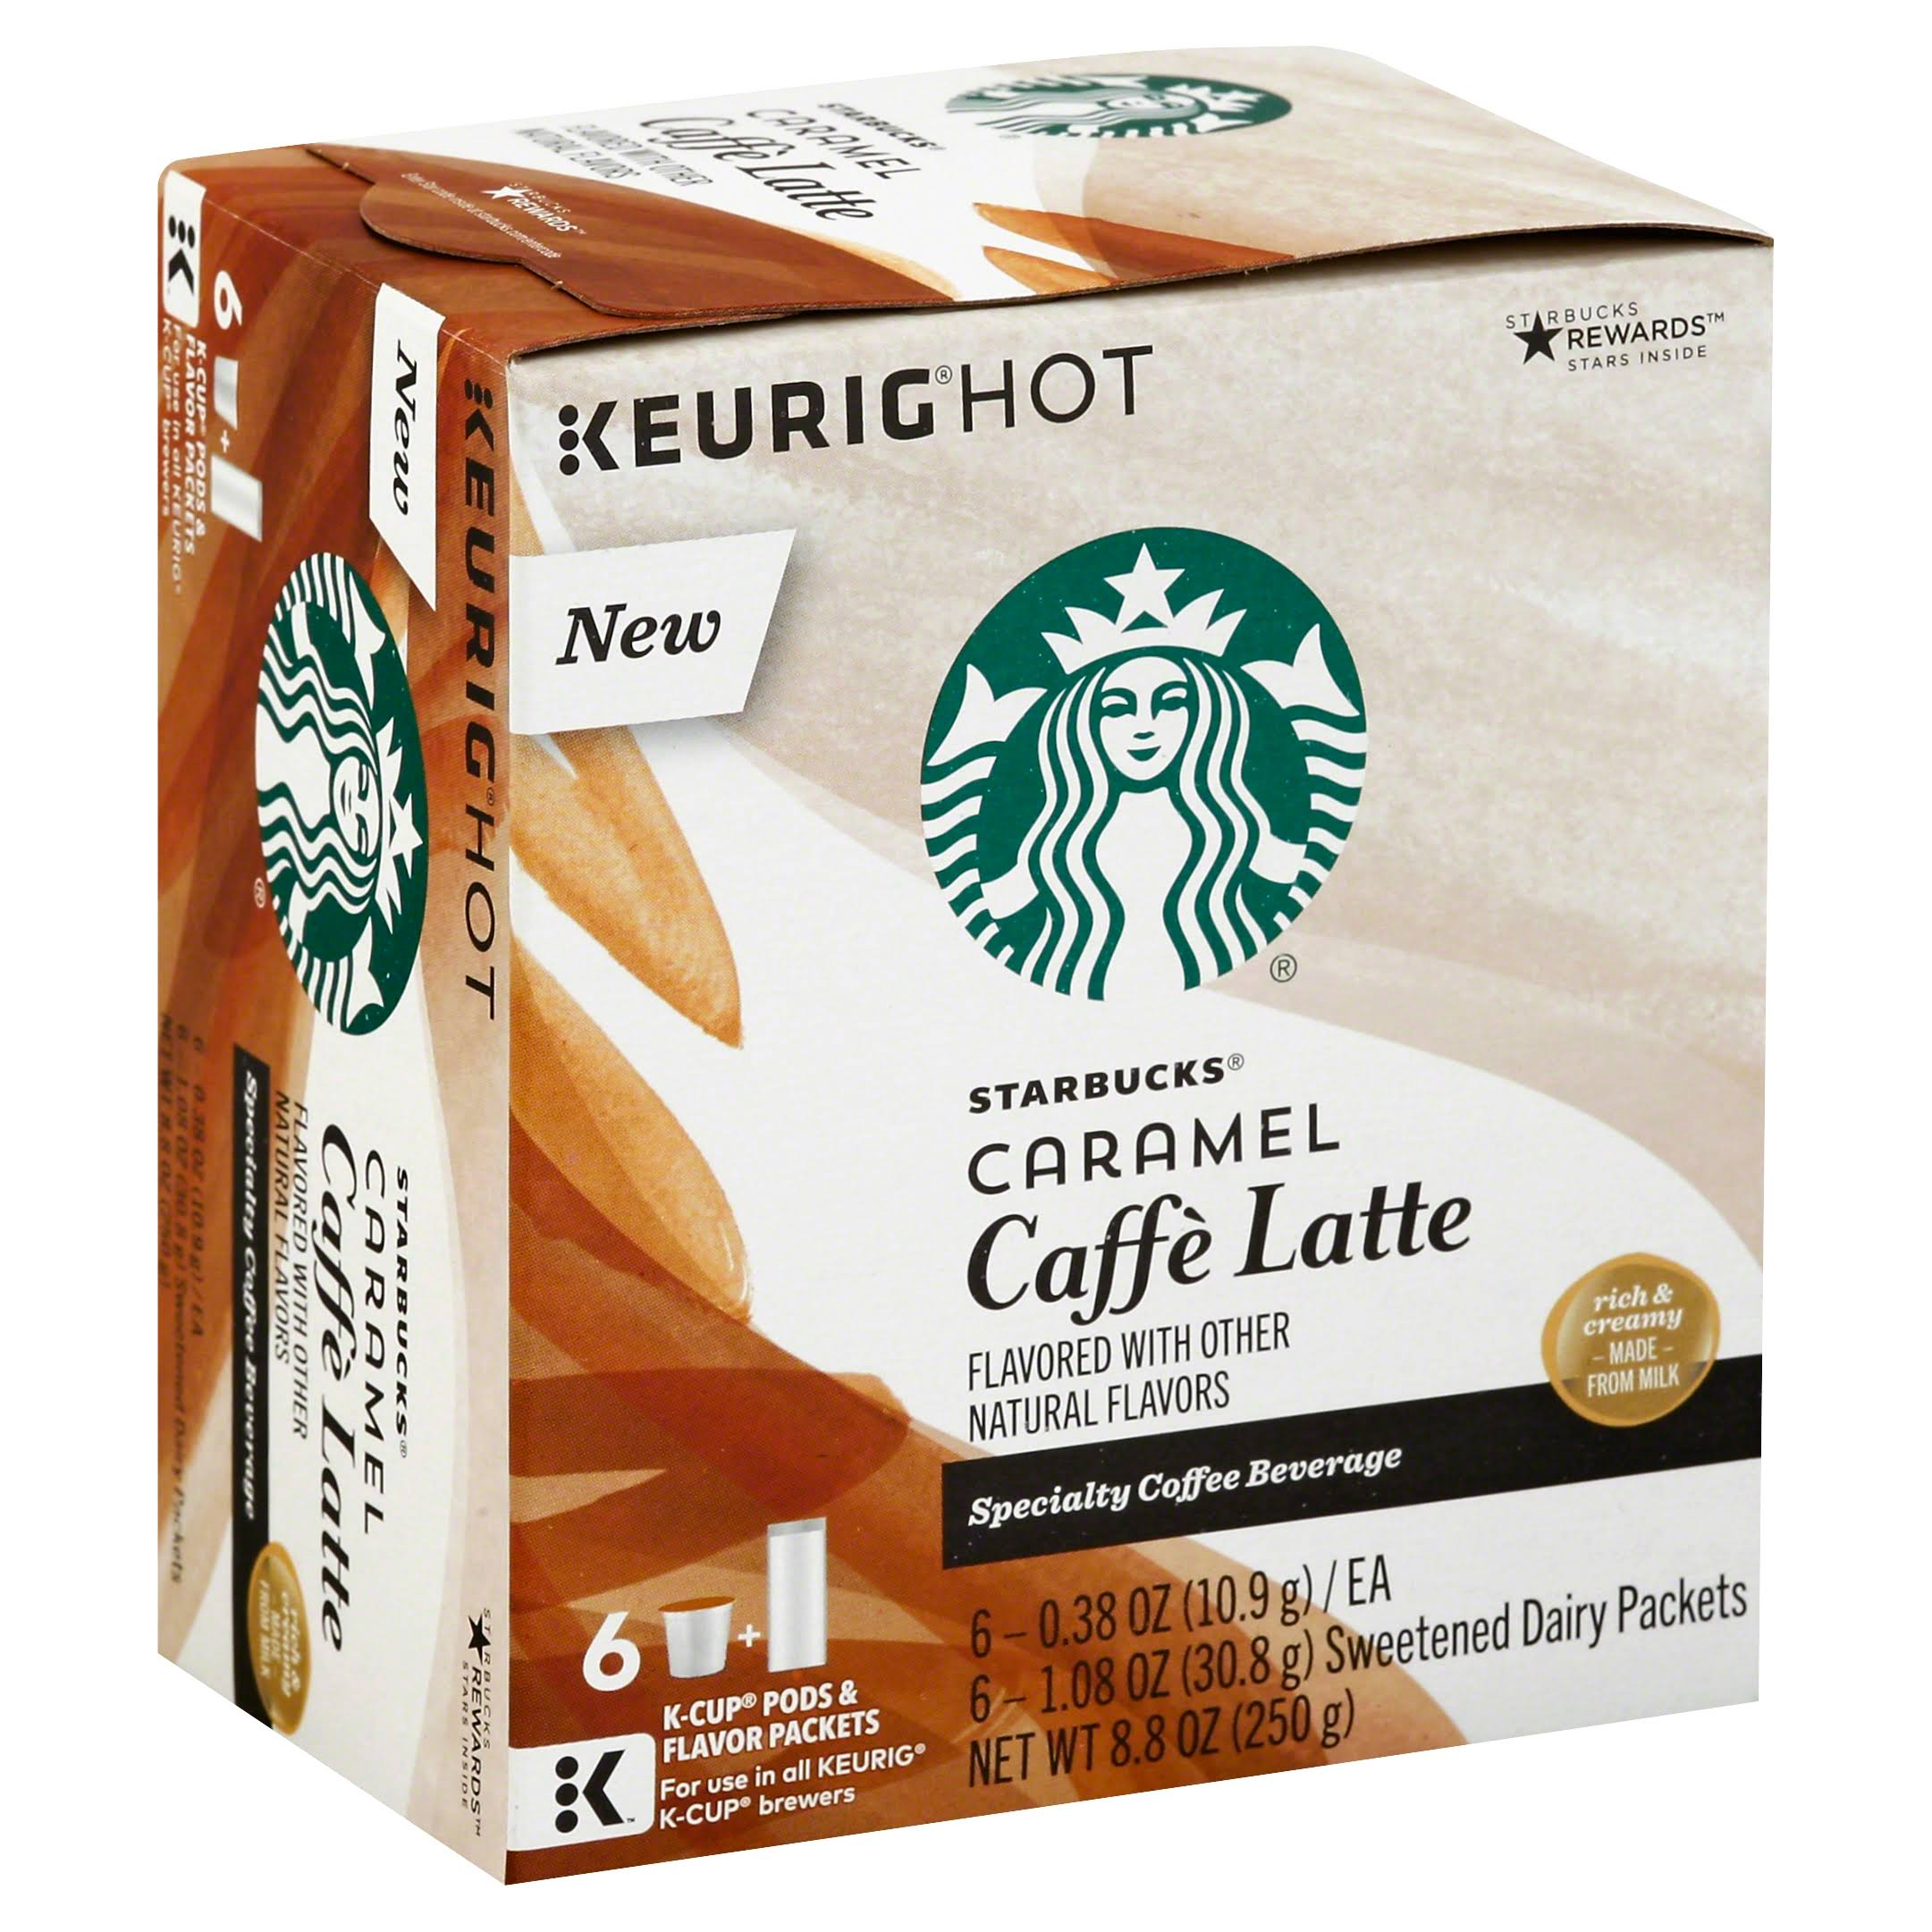 Starbucks Specialty Coffee Beverage K-Cups Pods - Caramel Caffe Latte, 8.8oz